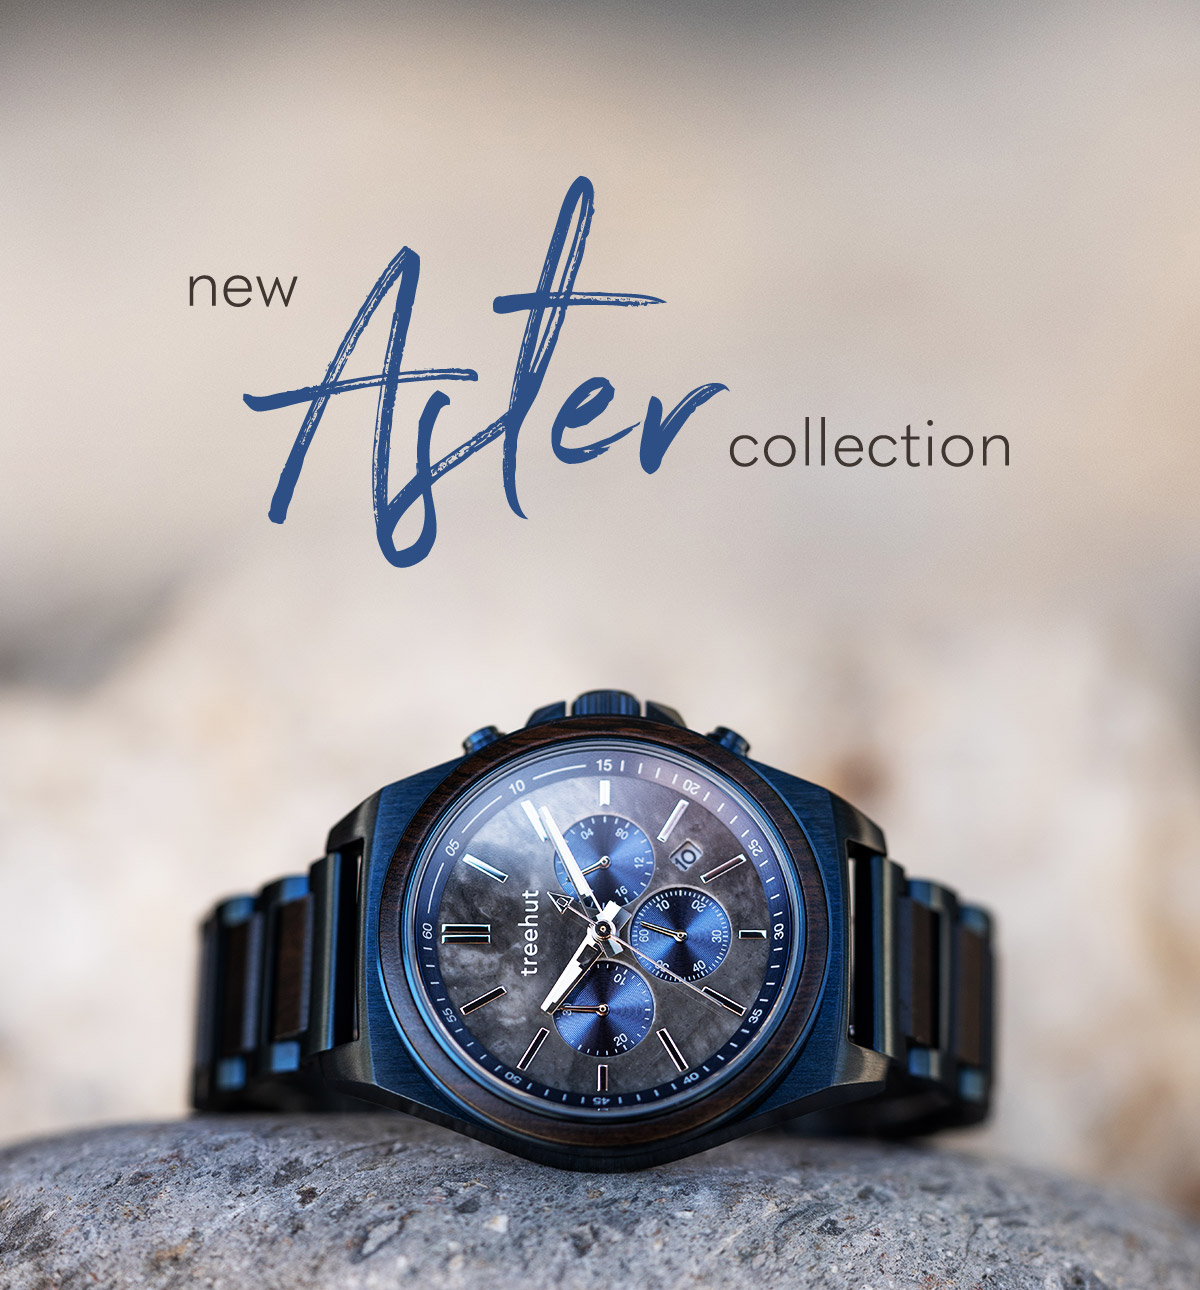 New Aster Collection.